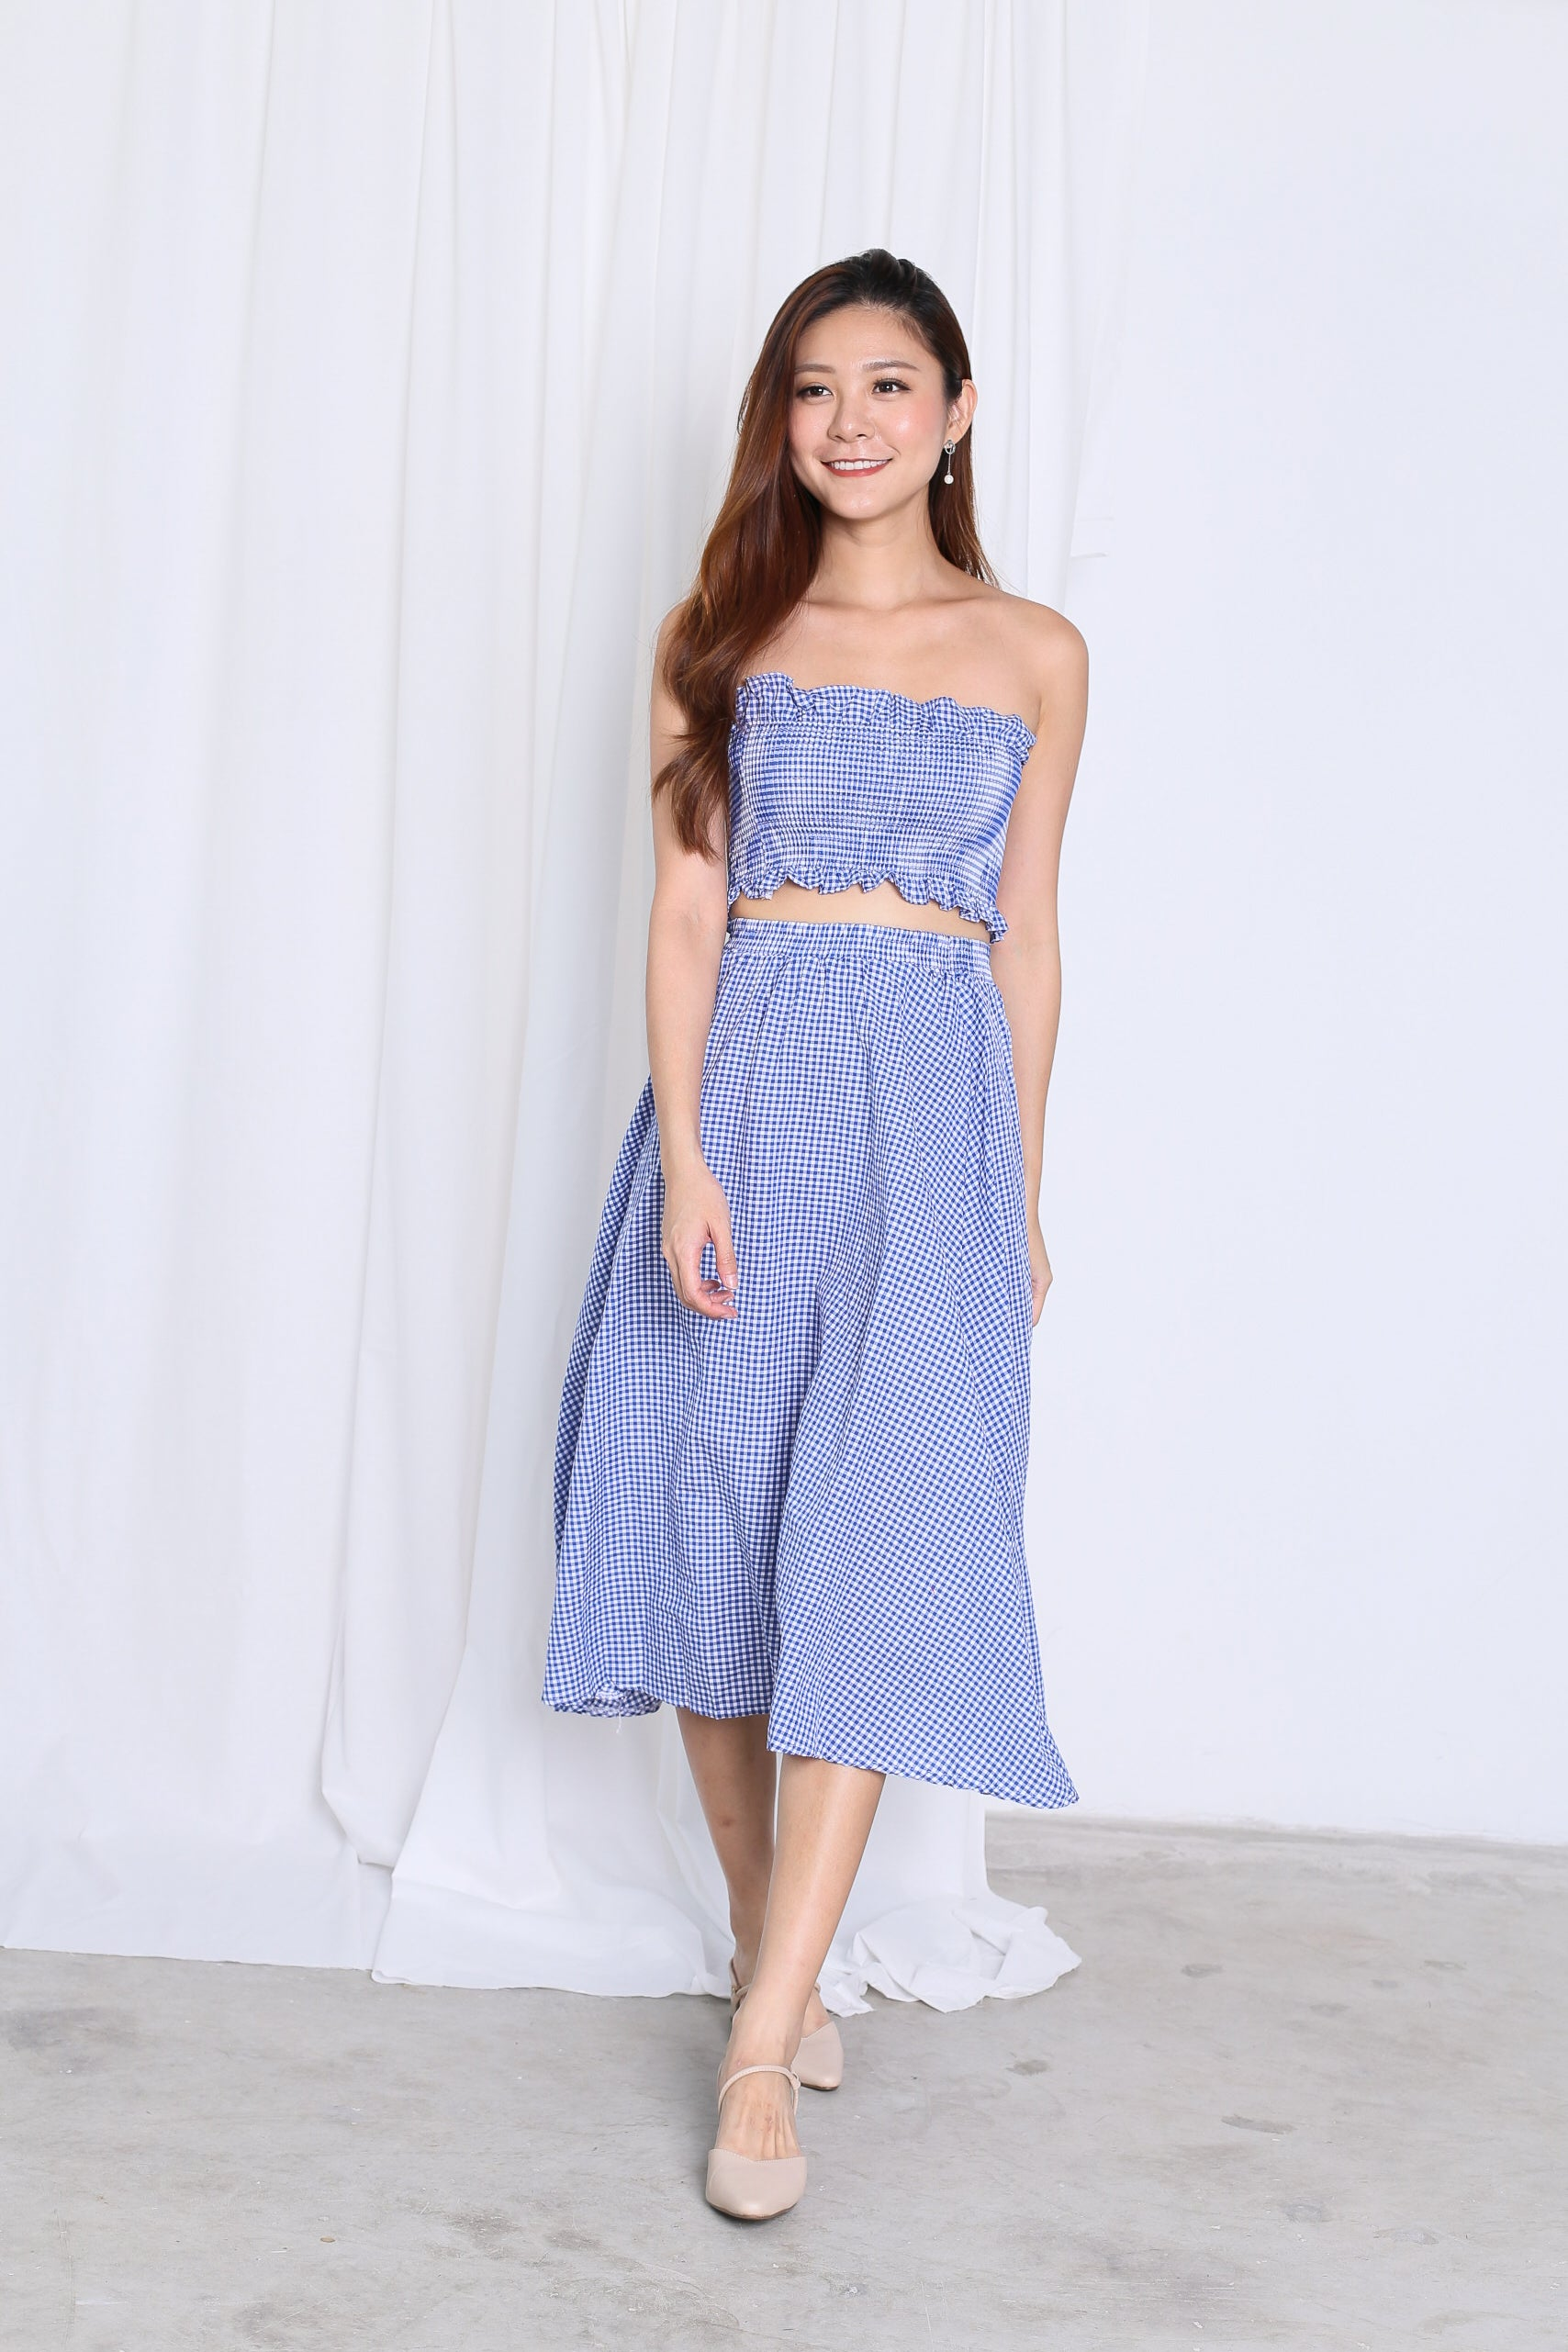 GINGHAM PICNIC SMOCKED TOP AND MIDI SET IN BLUE